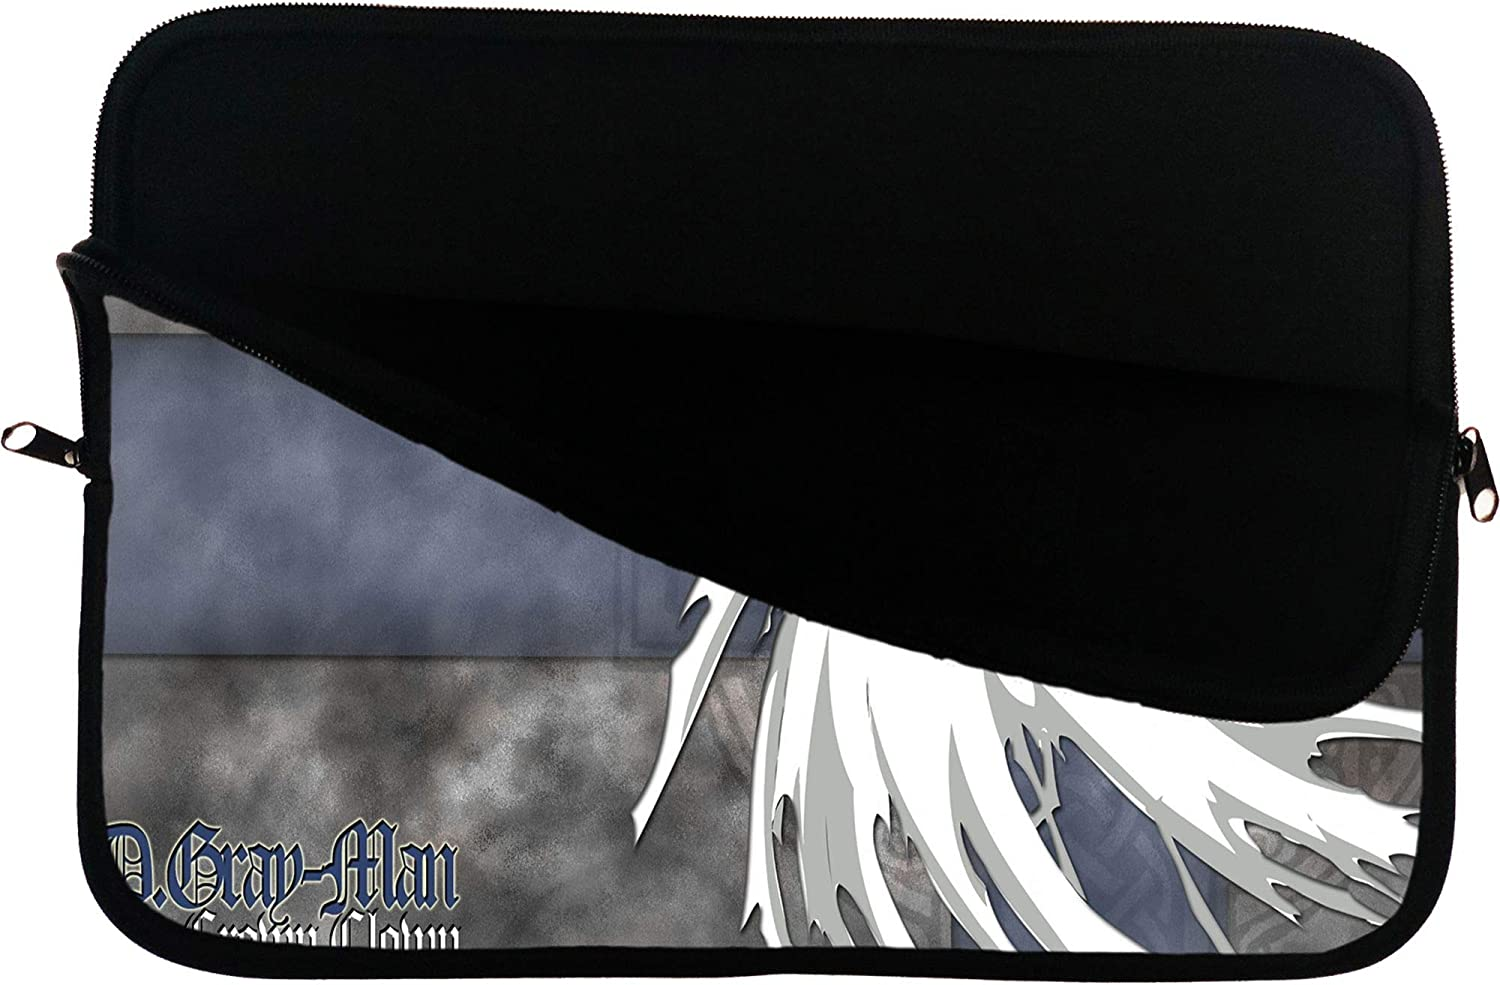 Brand4 D.Gray Man Anime Laptop Sleeve Bag Mousepad Surface Anime Bag 13 13.3 Inch Computer Bag Tablet Case Water Repellent Neoprene Cushioned Protection